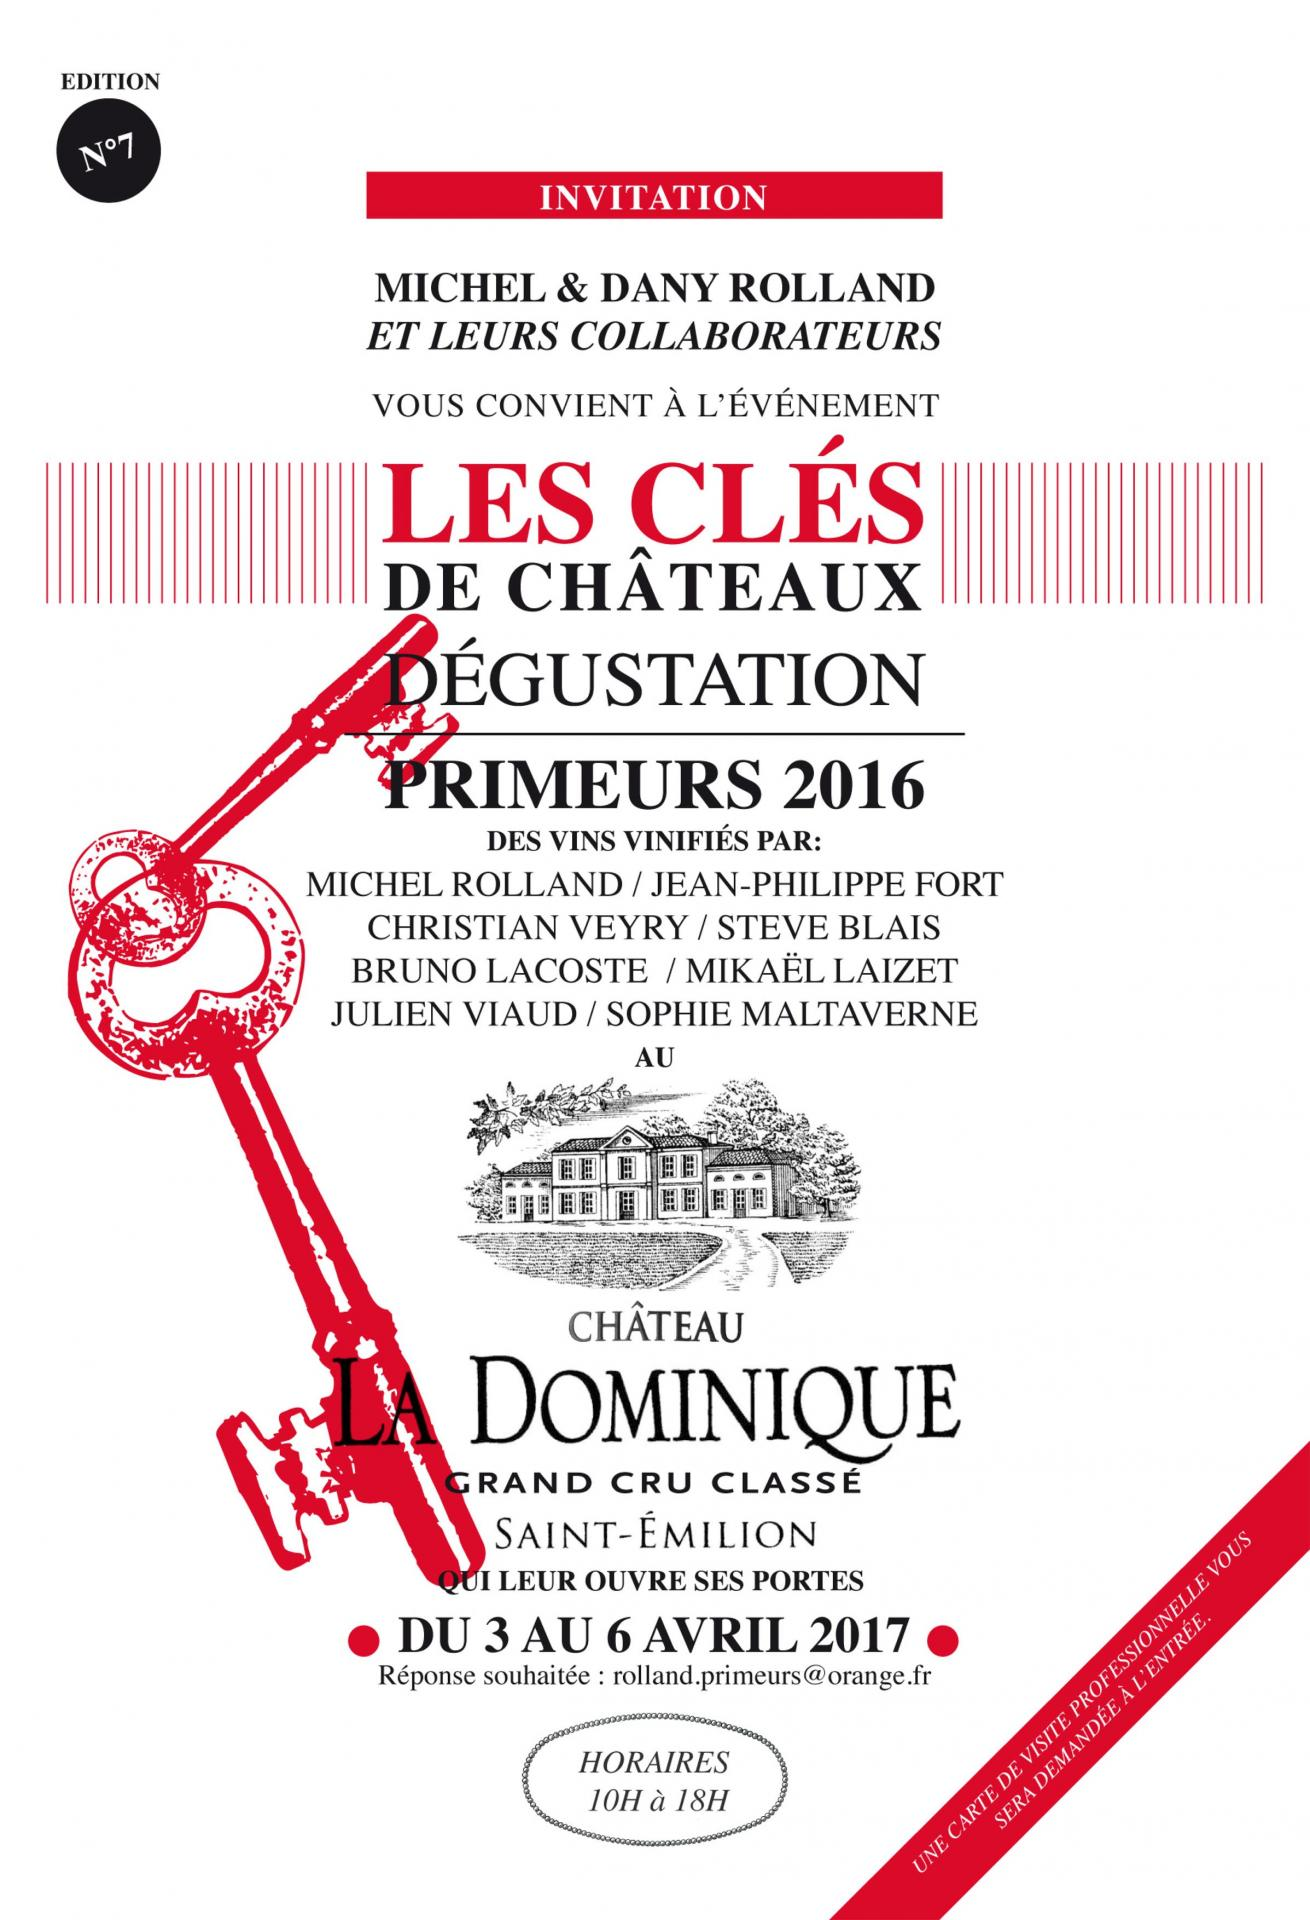 Invitation clesdechateaux2017 1